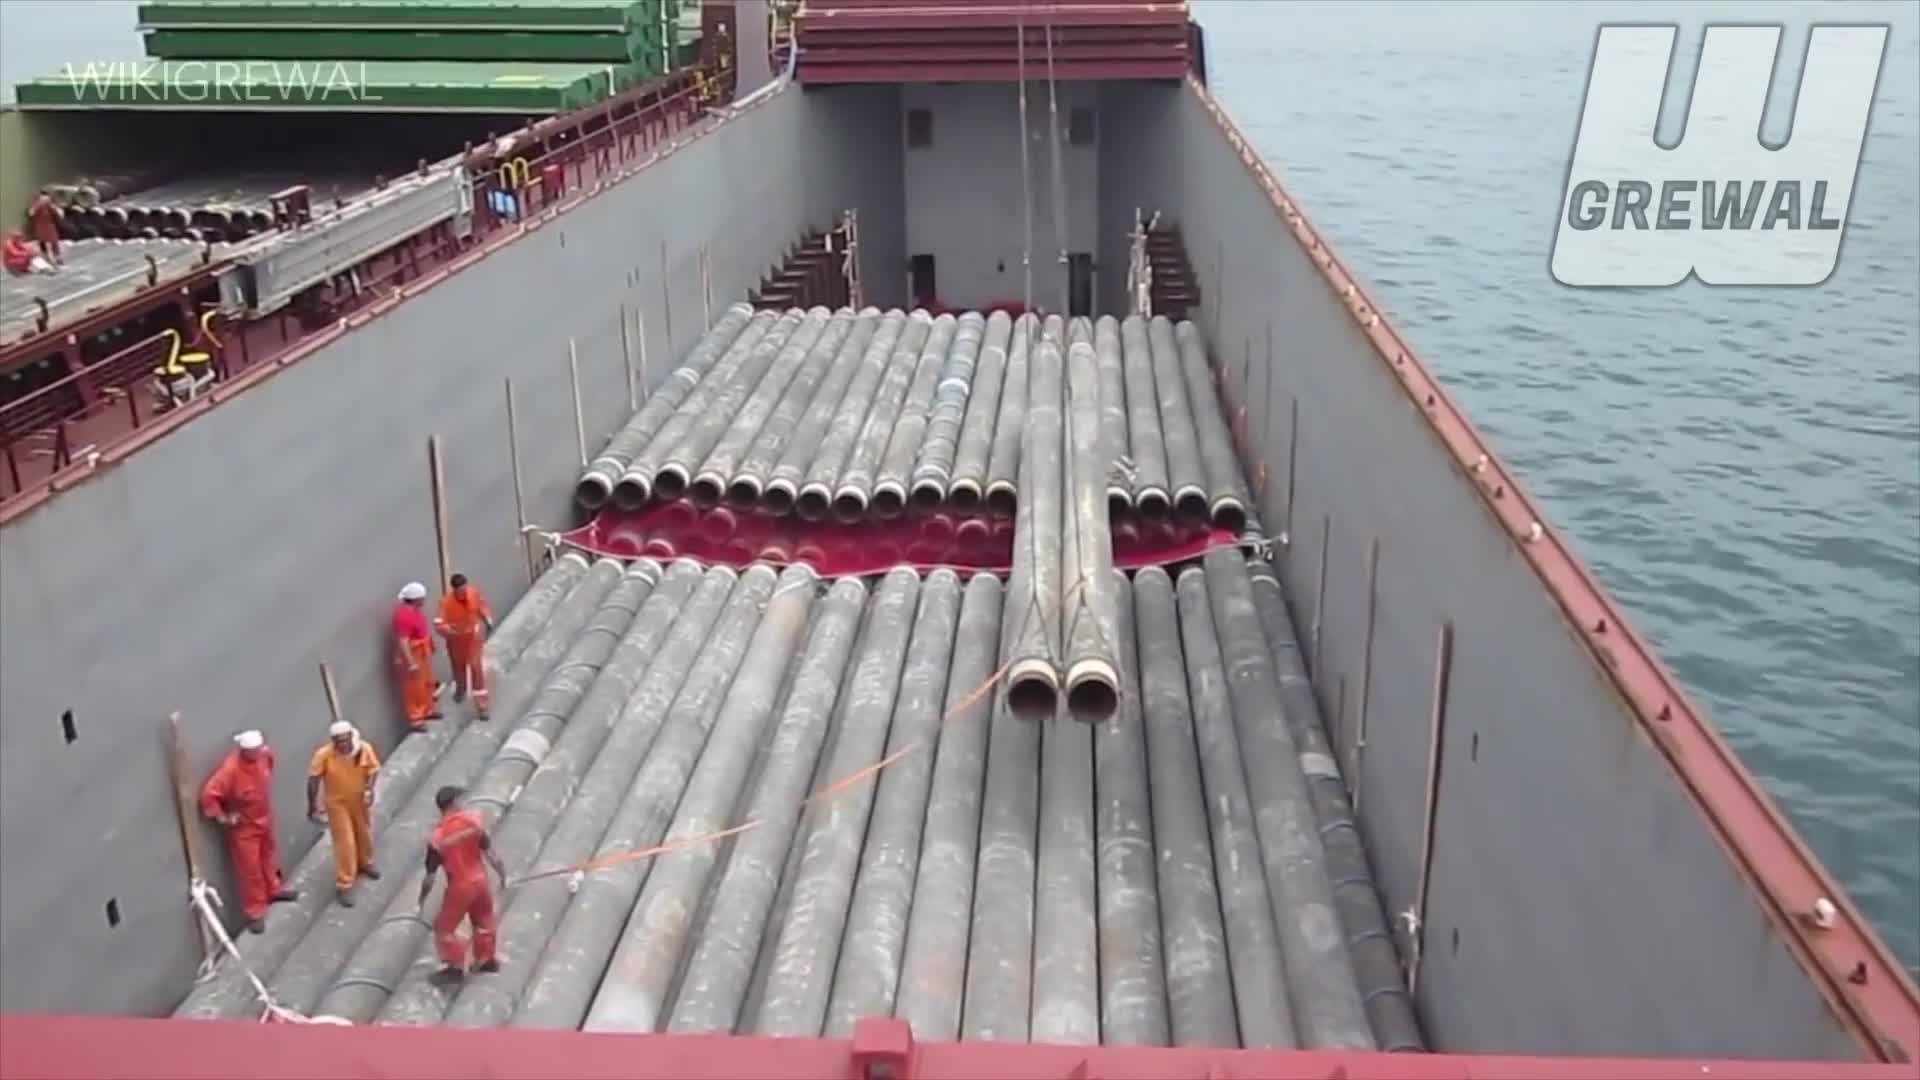 Crew Loading Pipes, Idiots At Sea, Marine Accident, Marine Incident, Nearmiss, Noob Marine Crew, Pipelaying Accident, Seaman On Rampage, Wikigrewal, ZERO HSE, IDIOTS AT SEA - Offshore Pipelay Crane FAILURE ACCIDENT GIFs